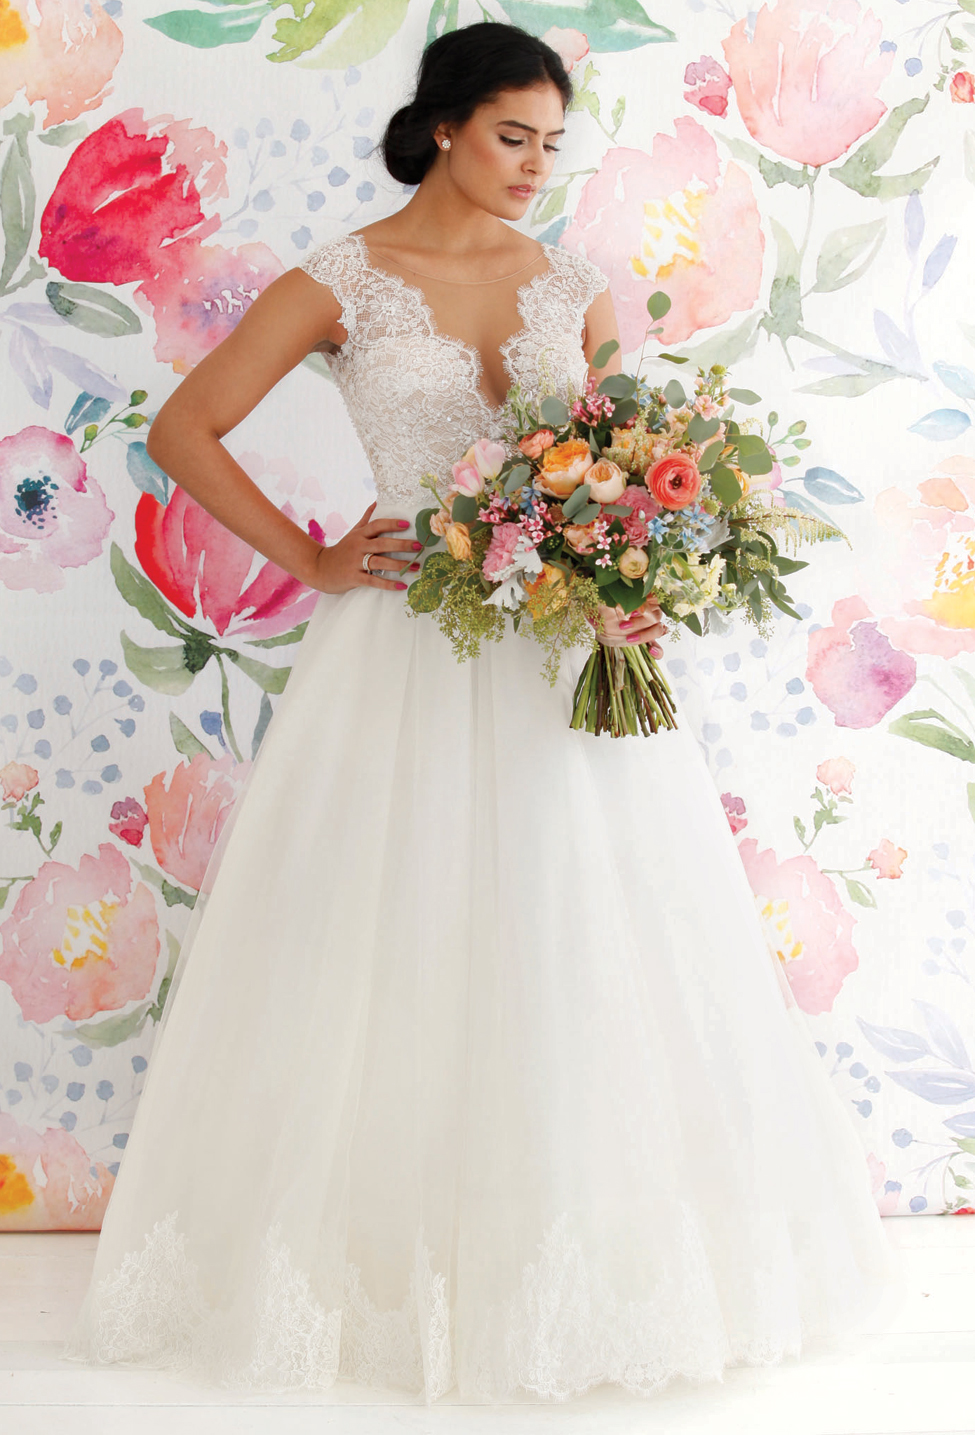 Love Abloom: Wedding Gowns & Accessories for the Spring/Summer Bride